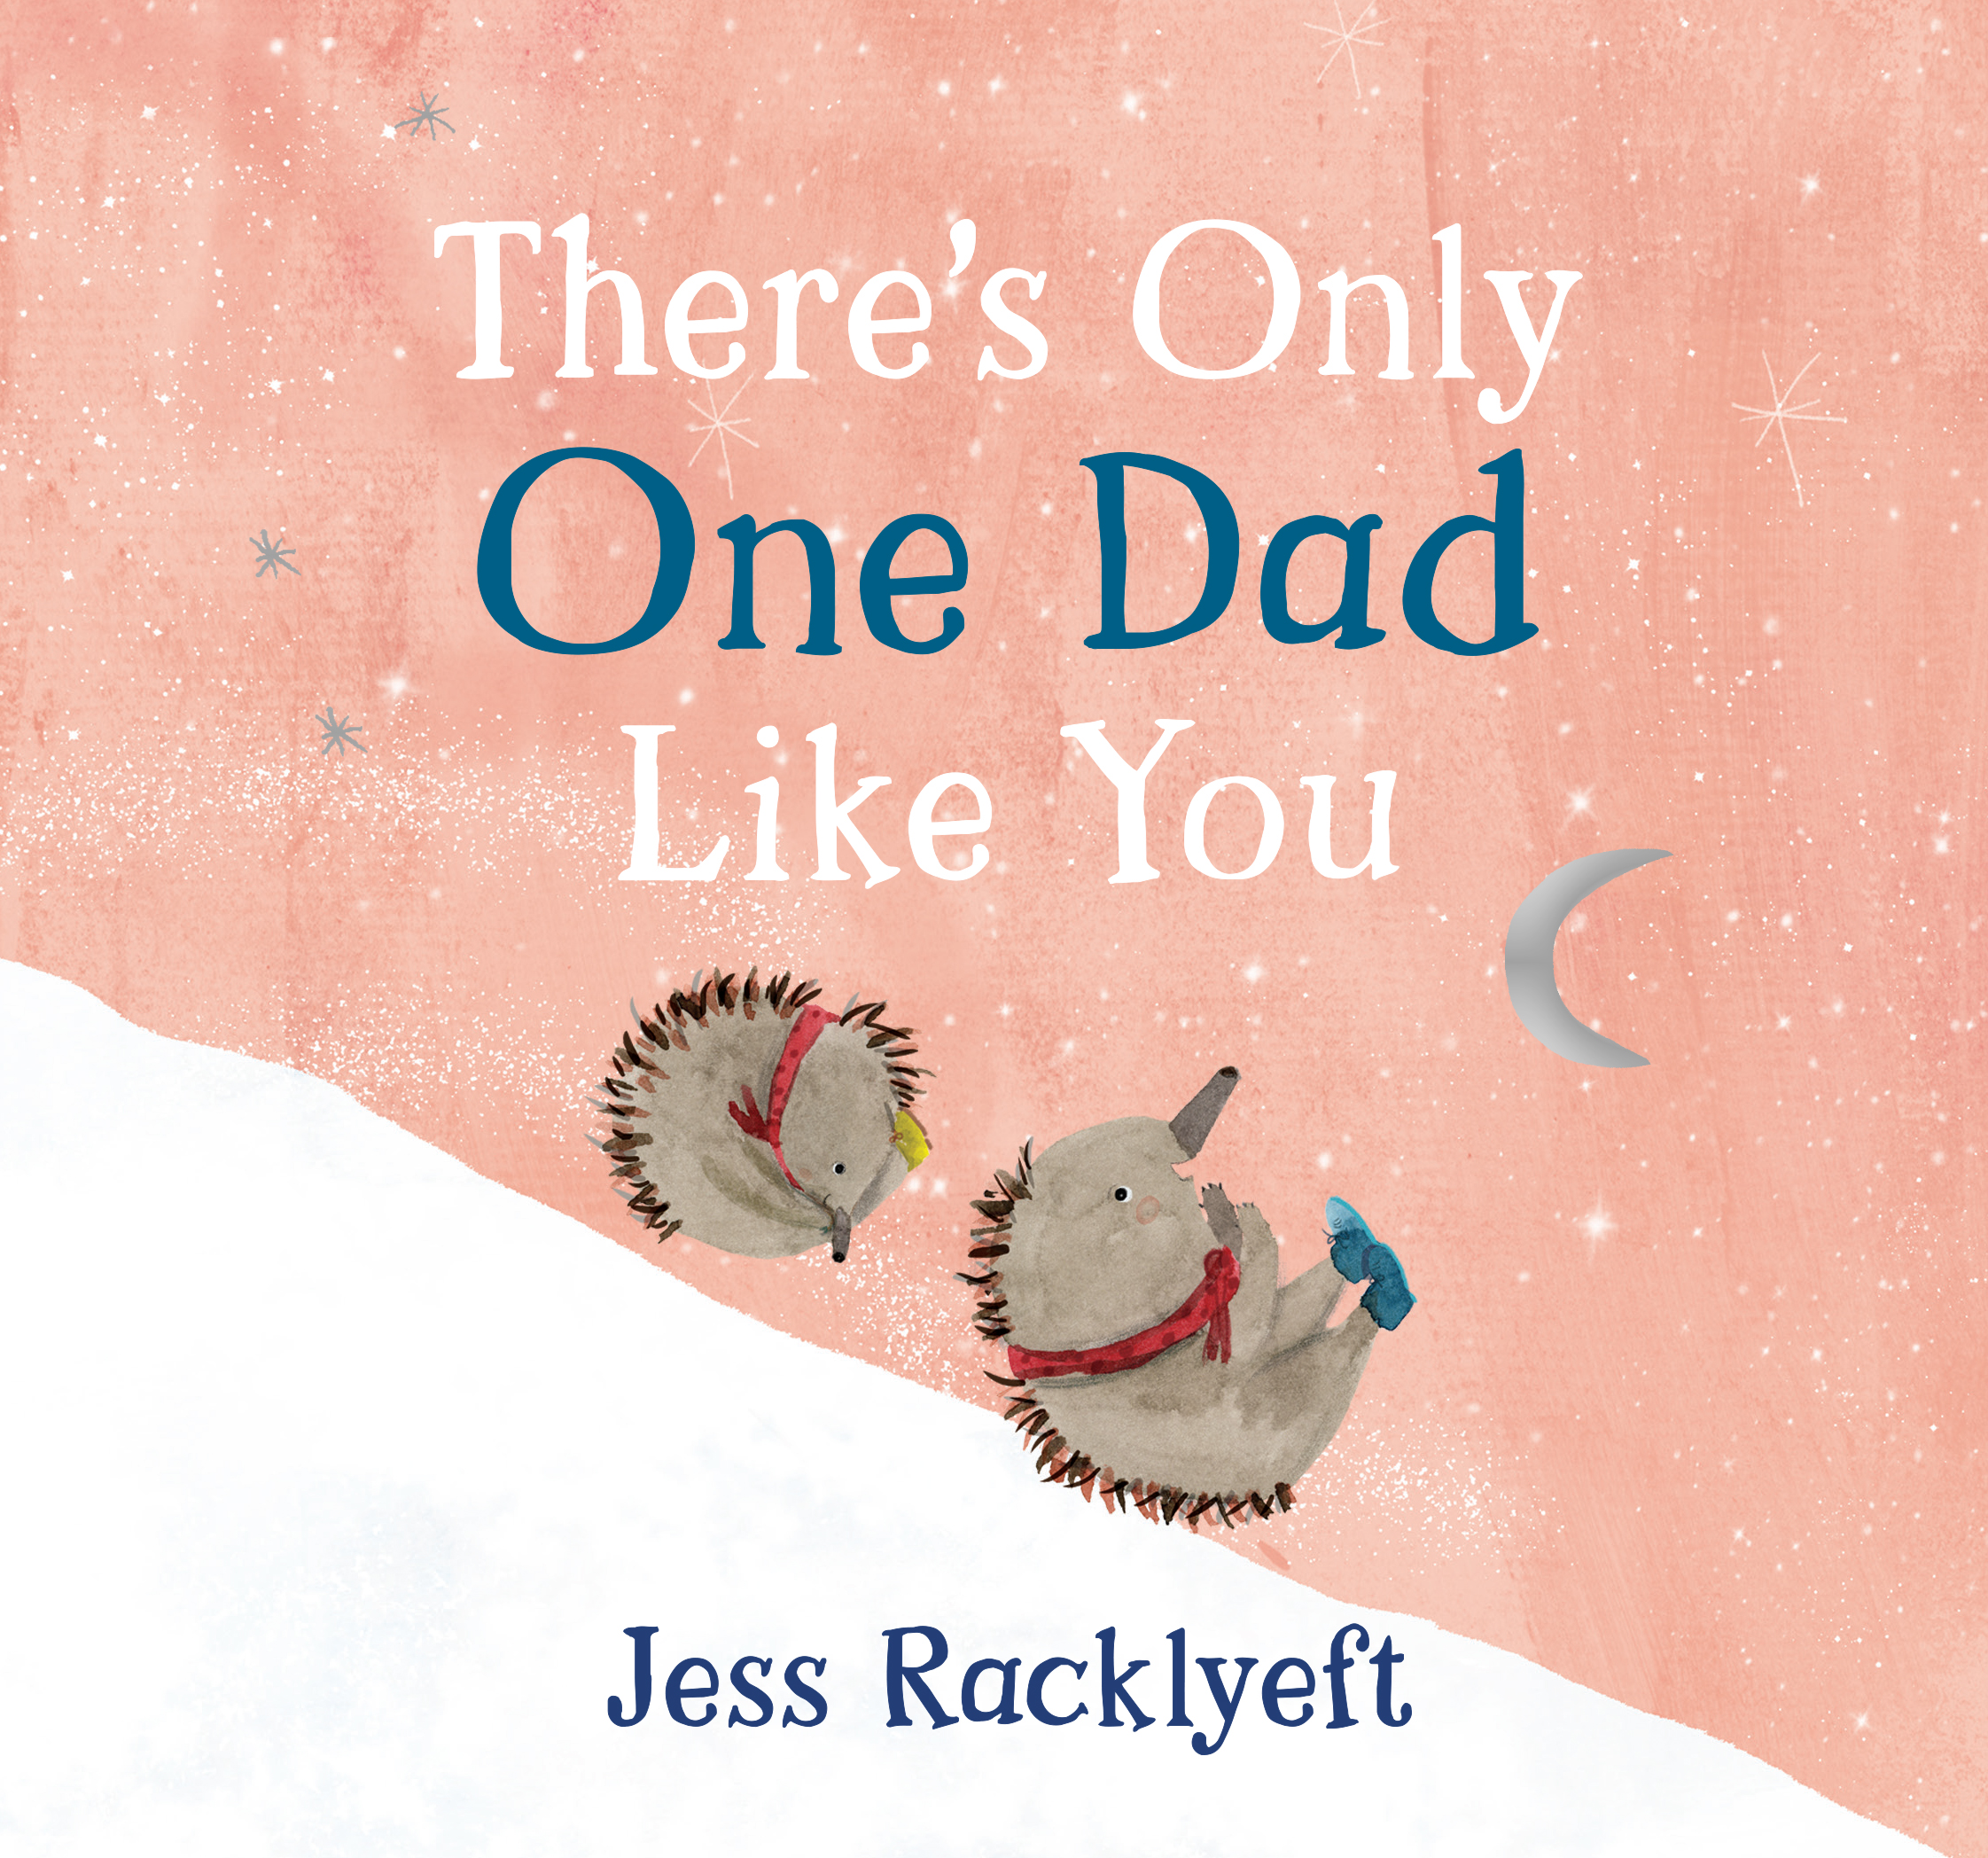 There's Only One Friend Like You by Jess Racklyeft